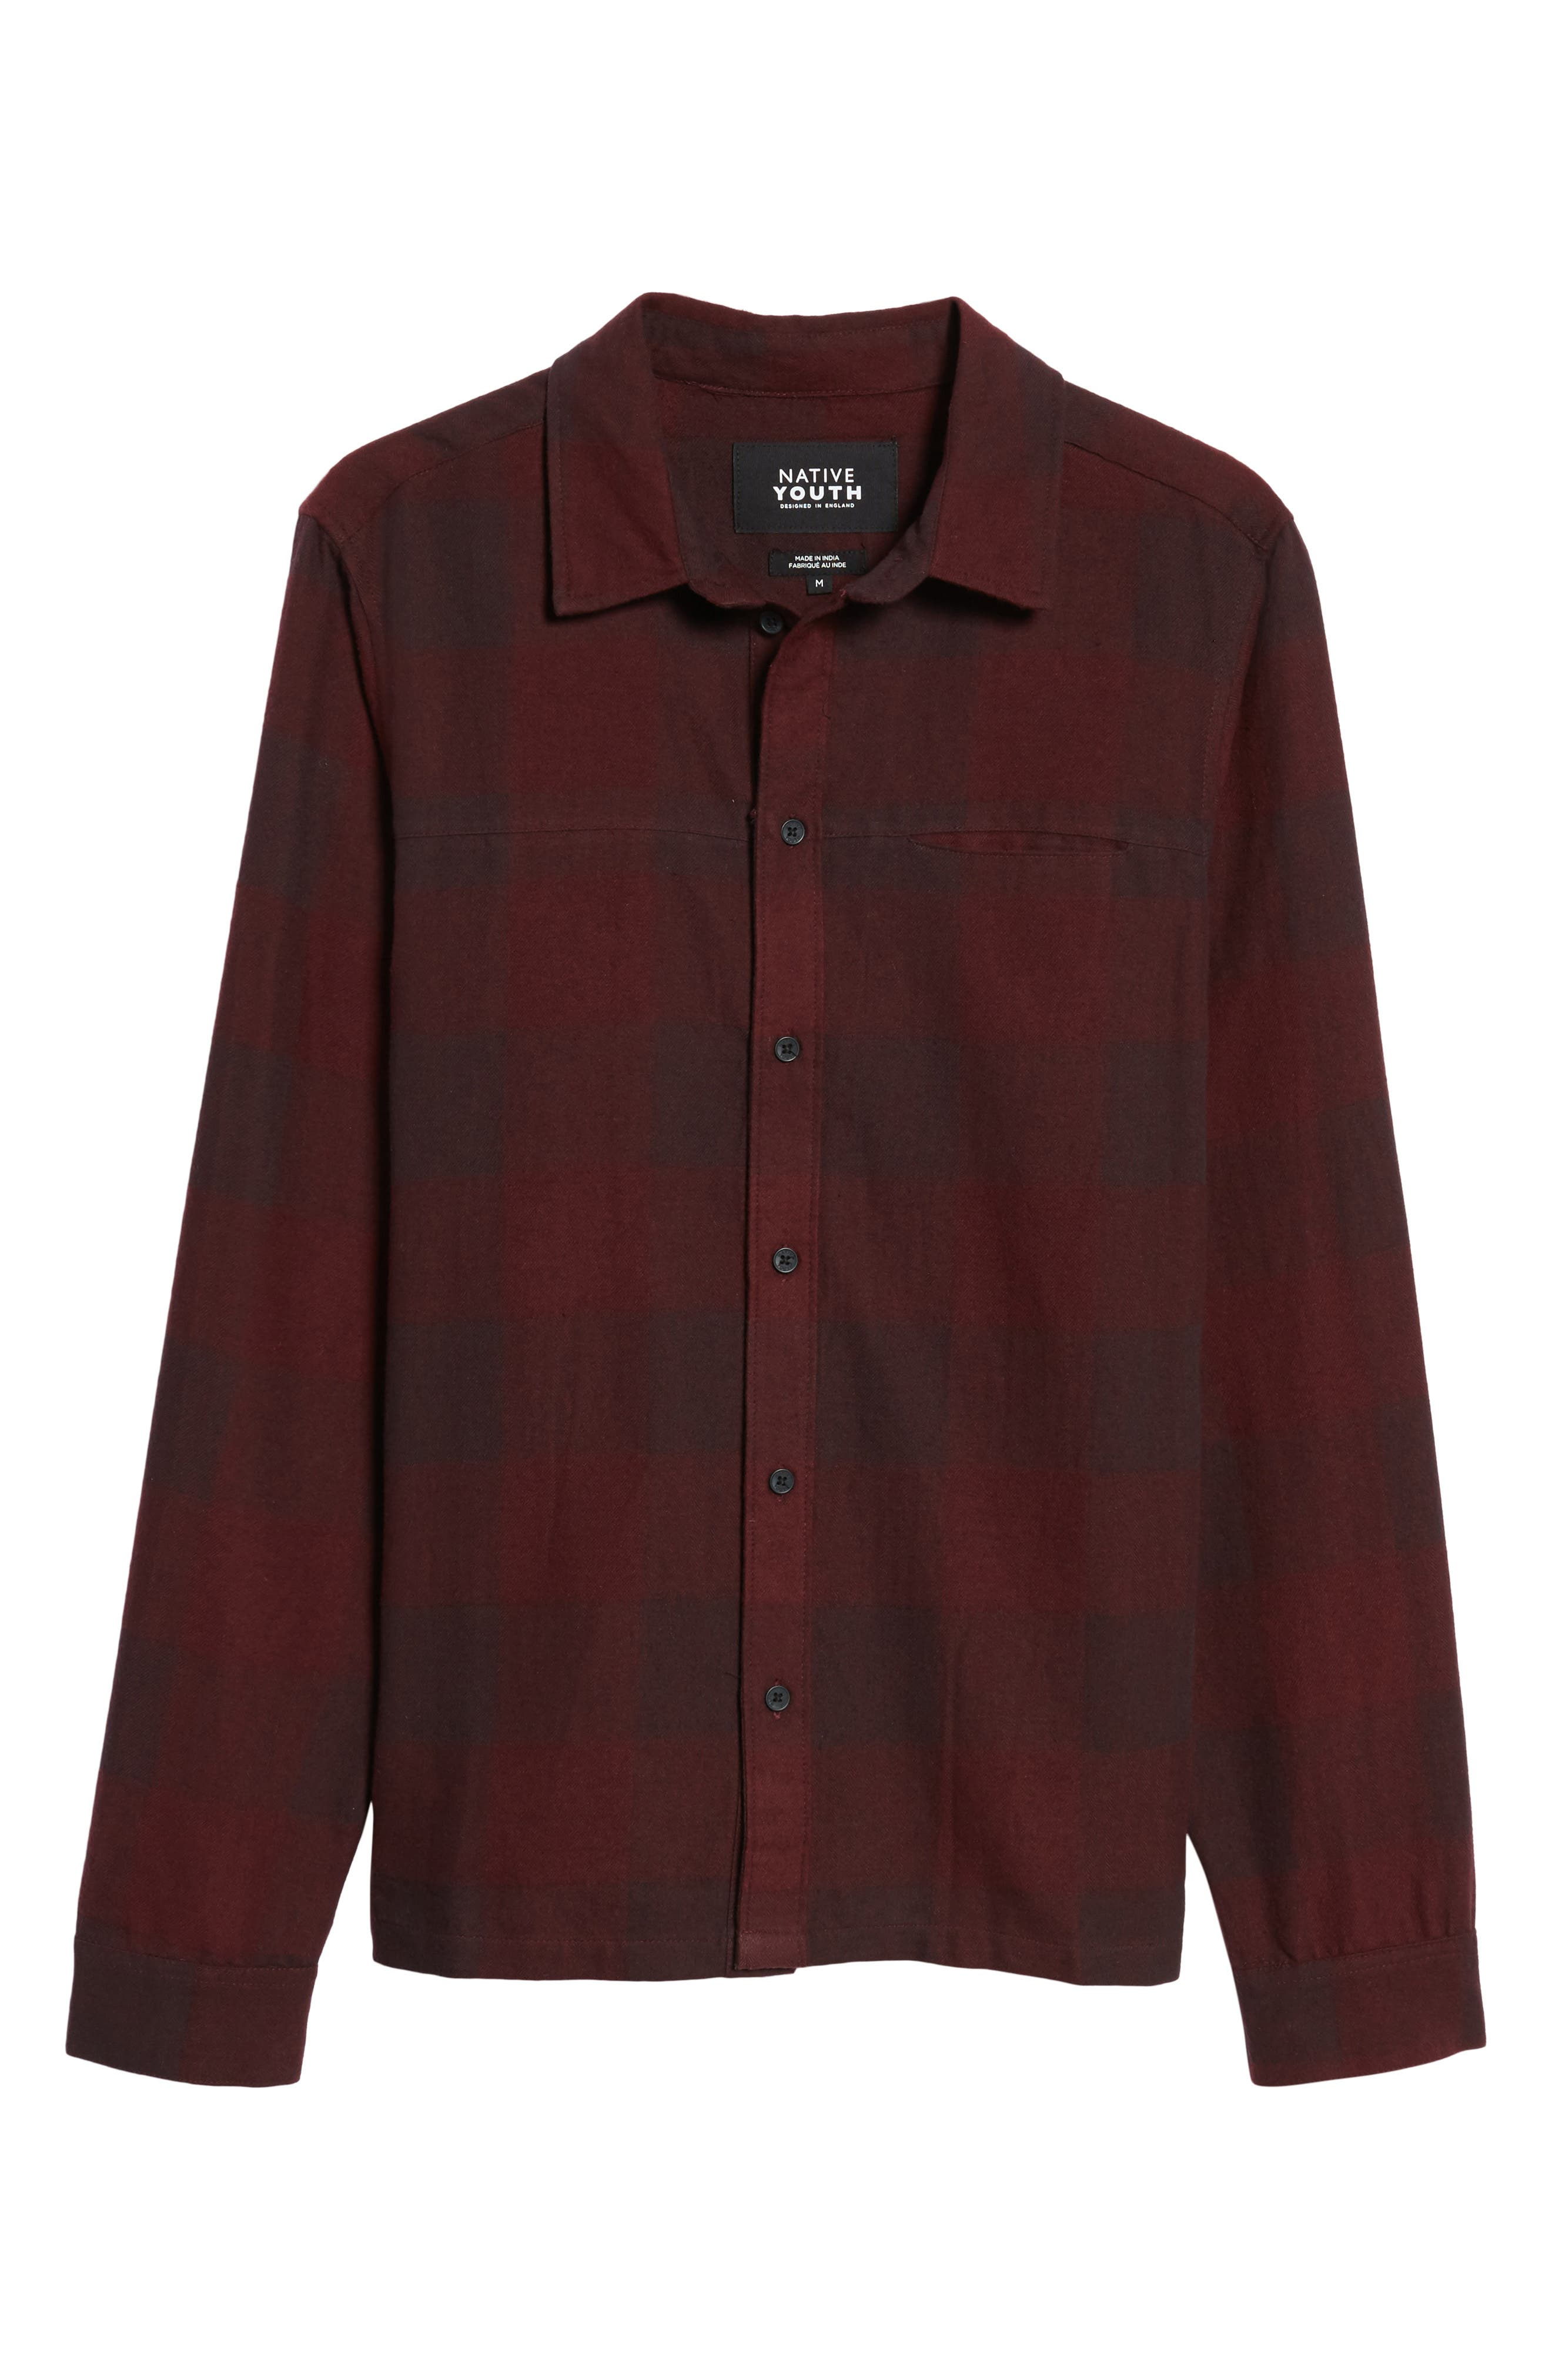 Chalgrove Buffalo Plaid Flannel Sport Shirt,                             Alternate thumbnail 6, color,                             930